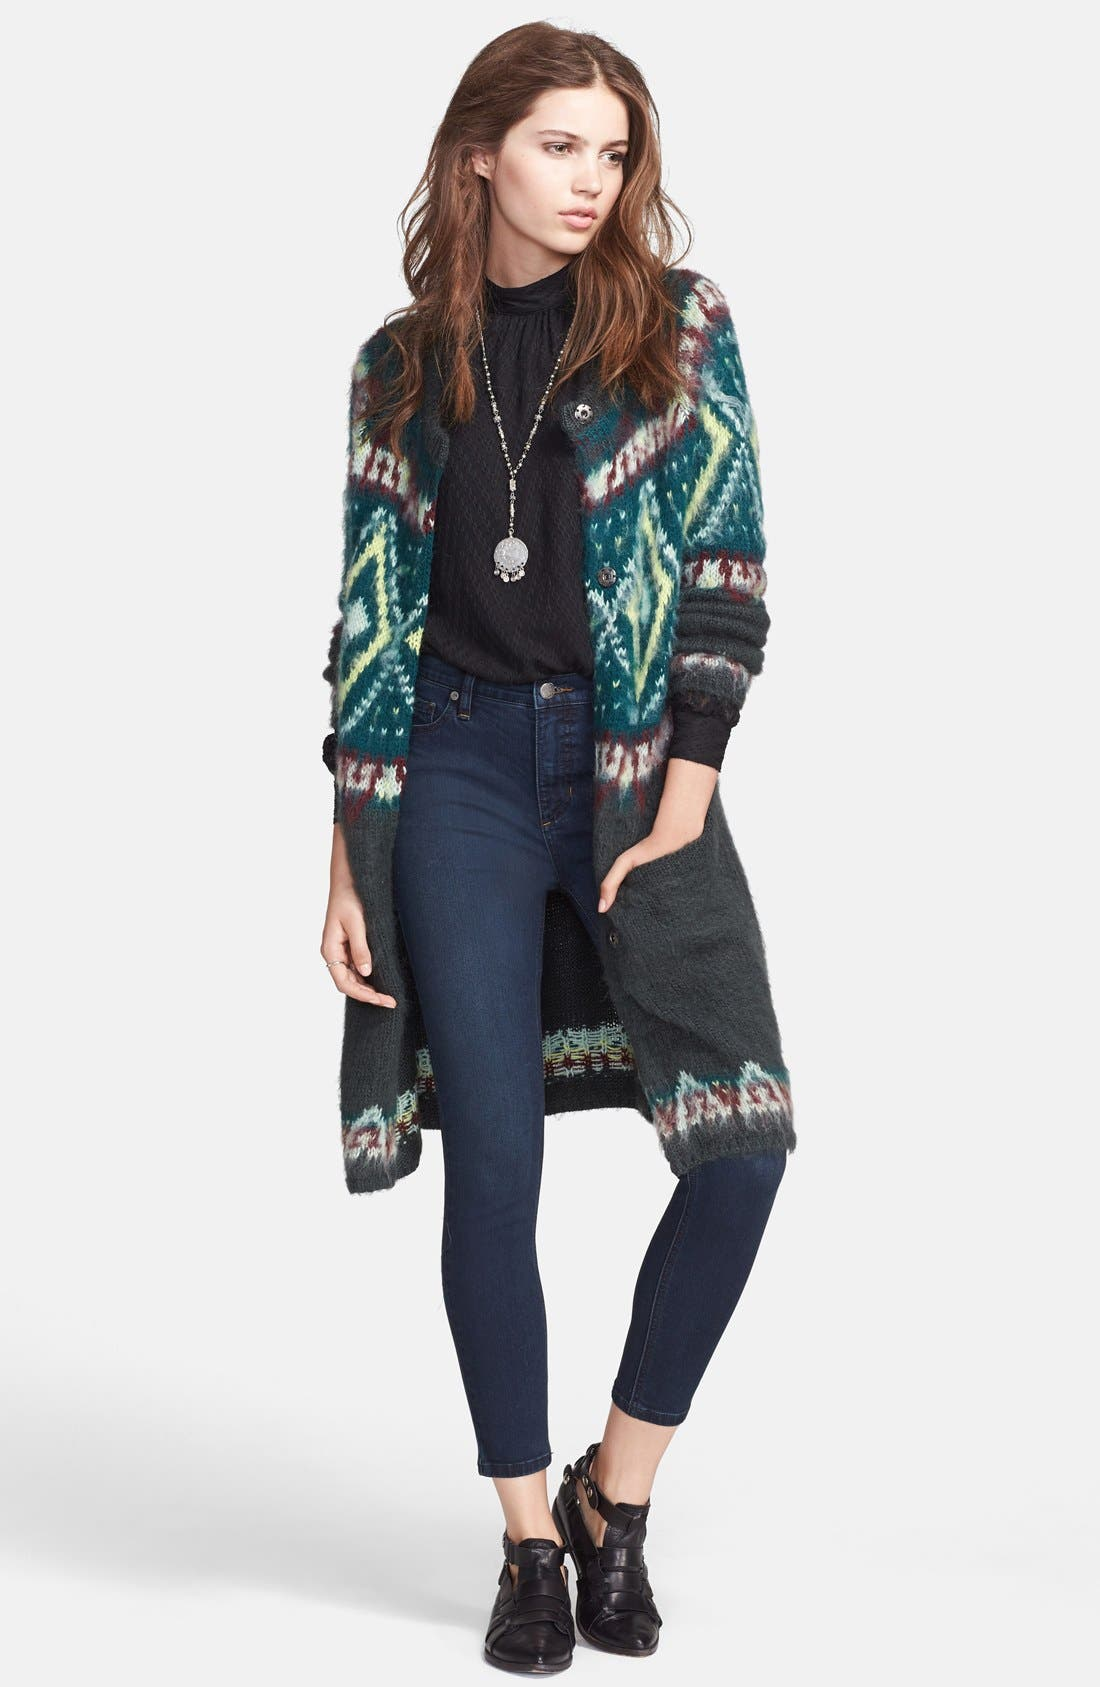 Free People Frosted Fair Isle Cardigan | Nordstrom